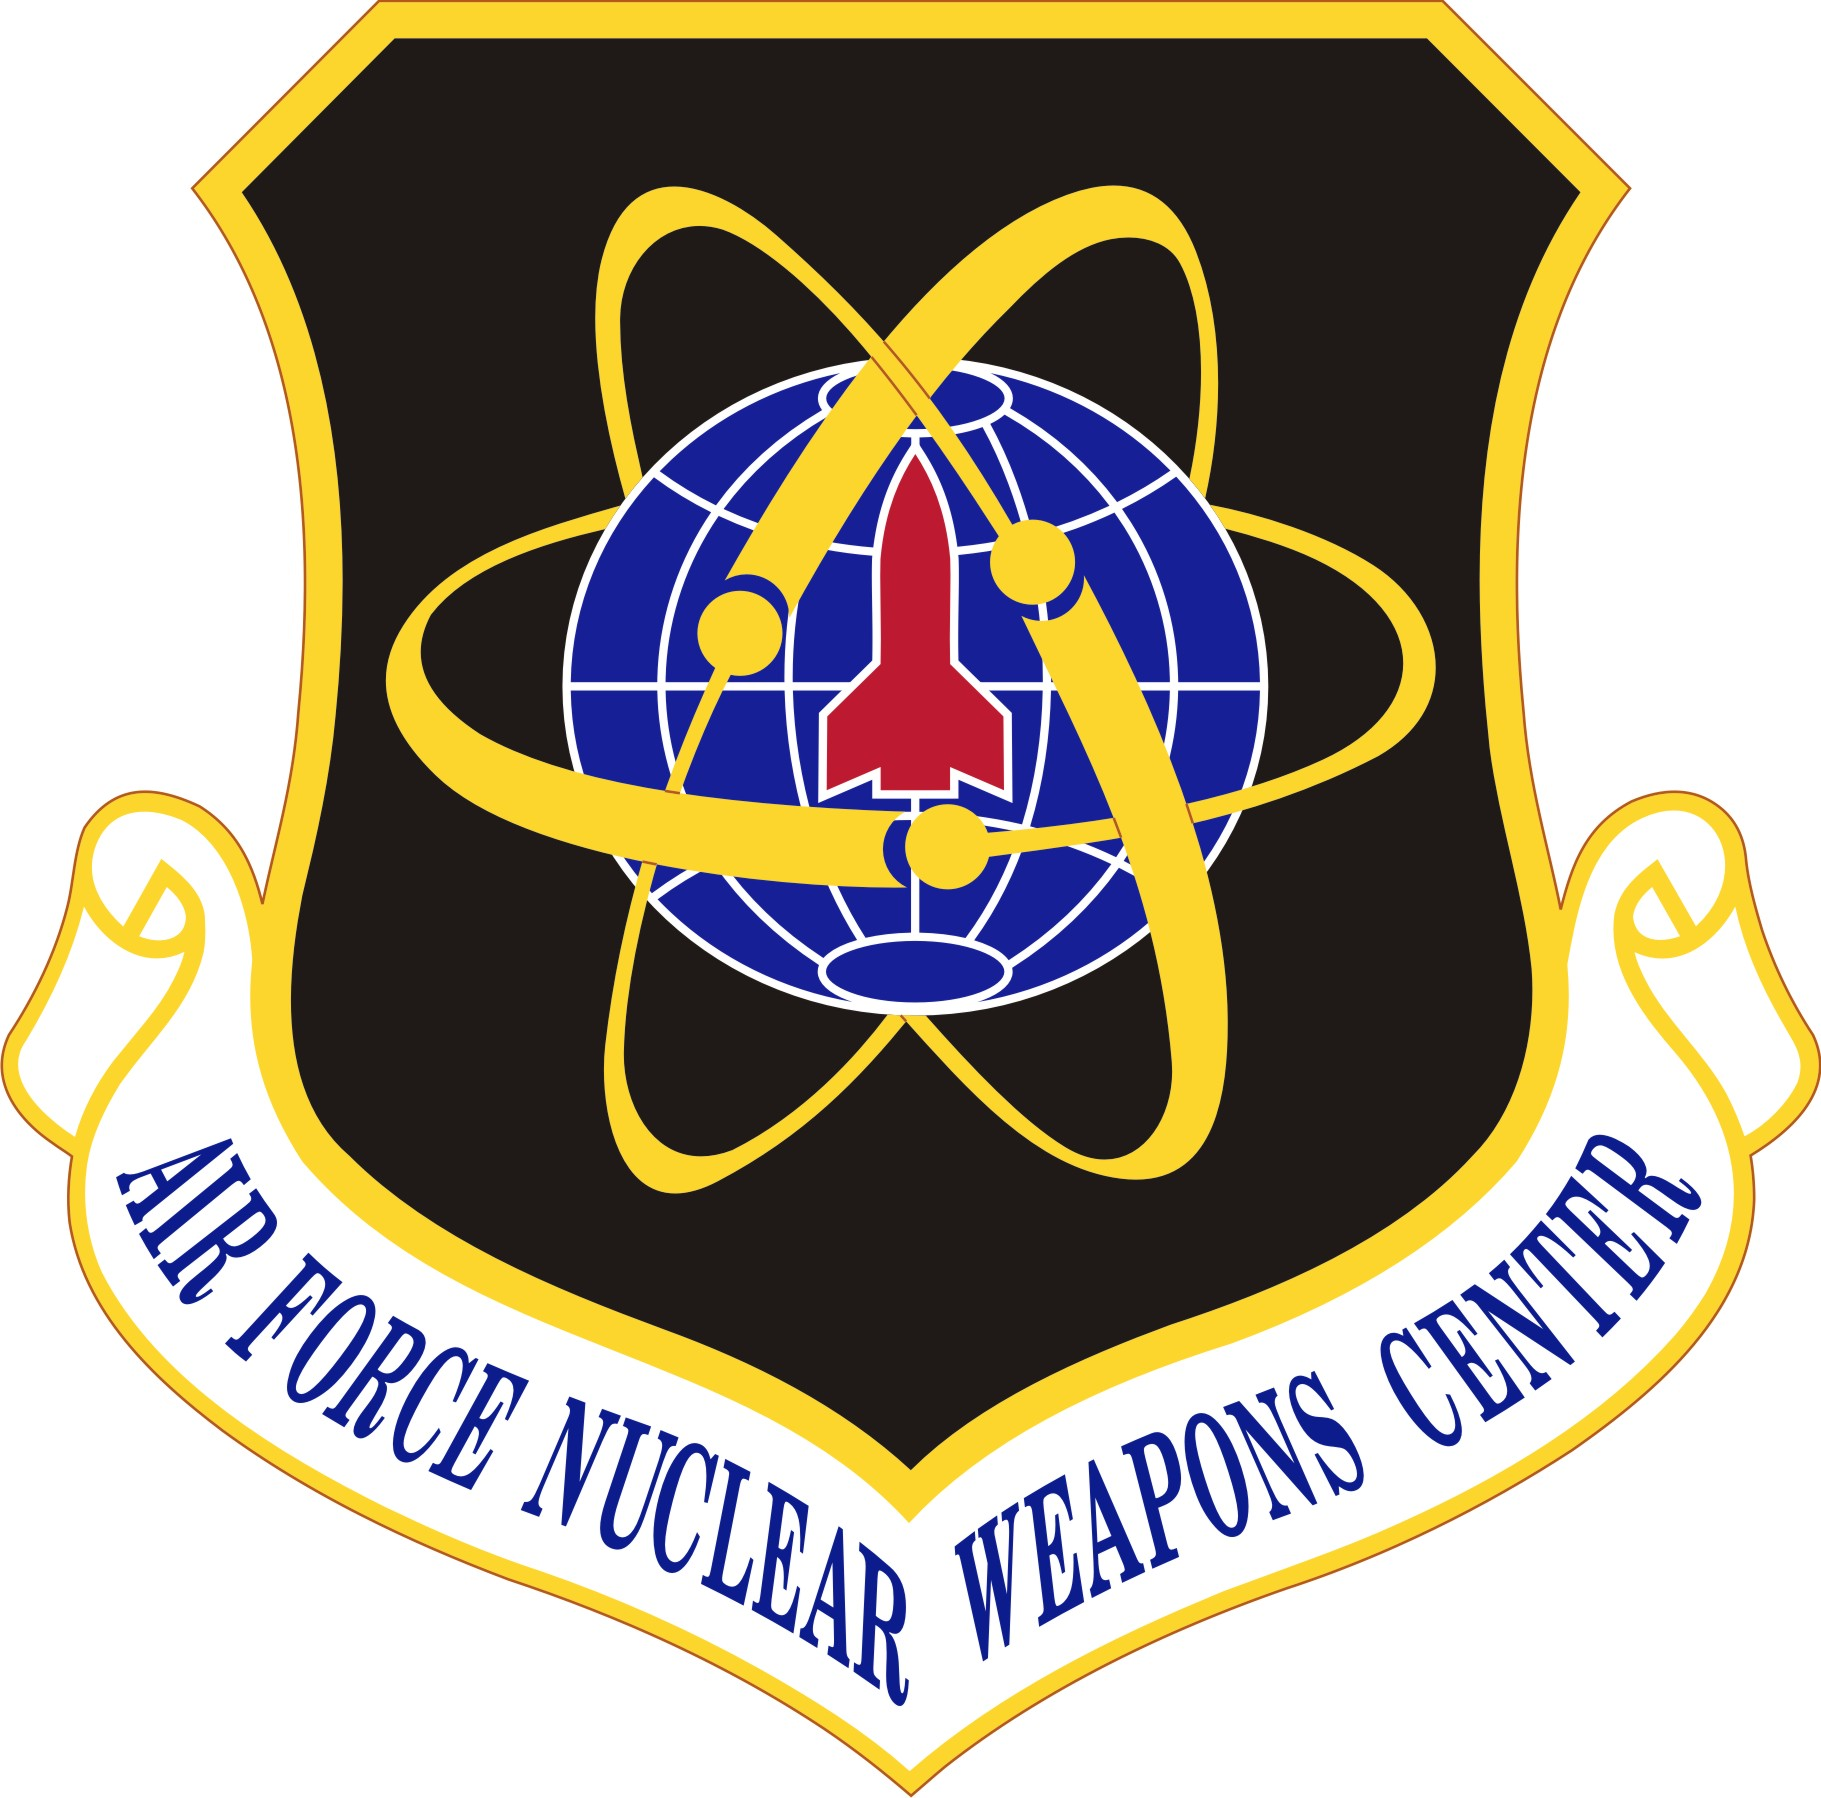 Air Force Nuclear Weapons Center Logo